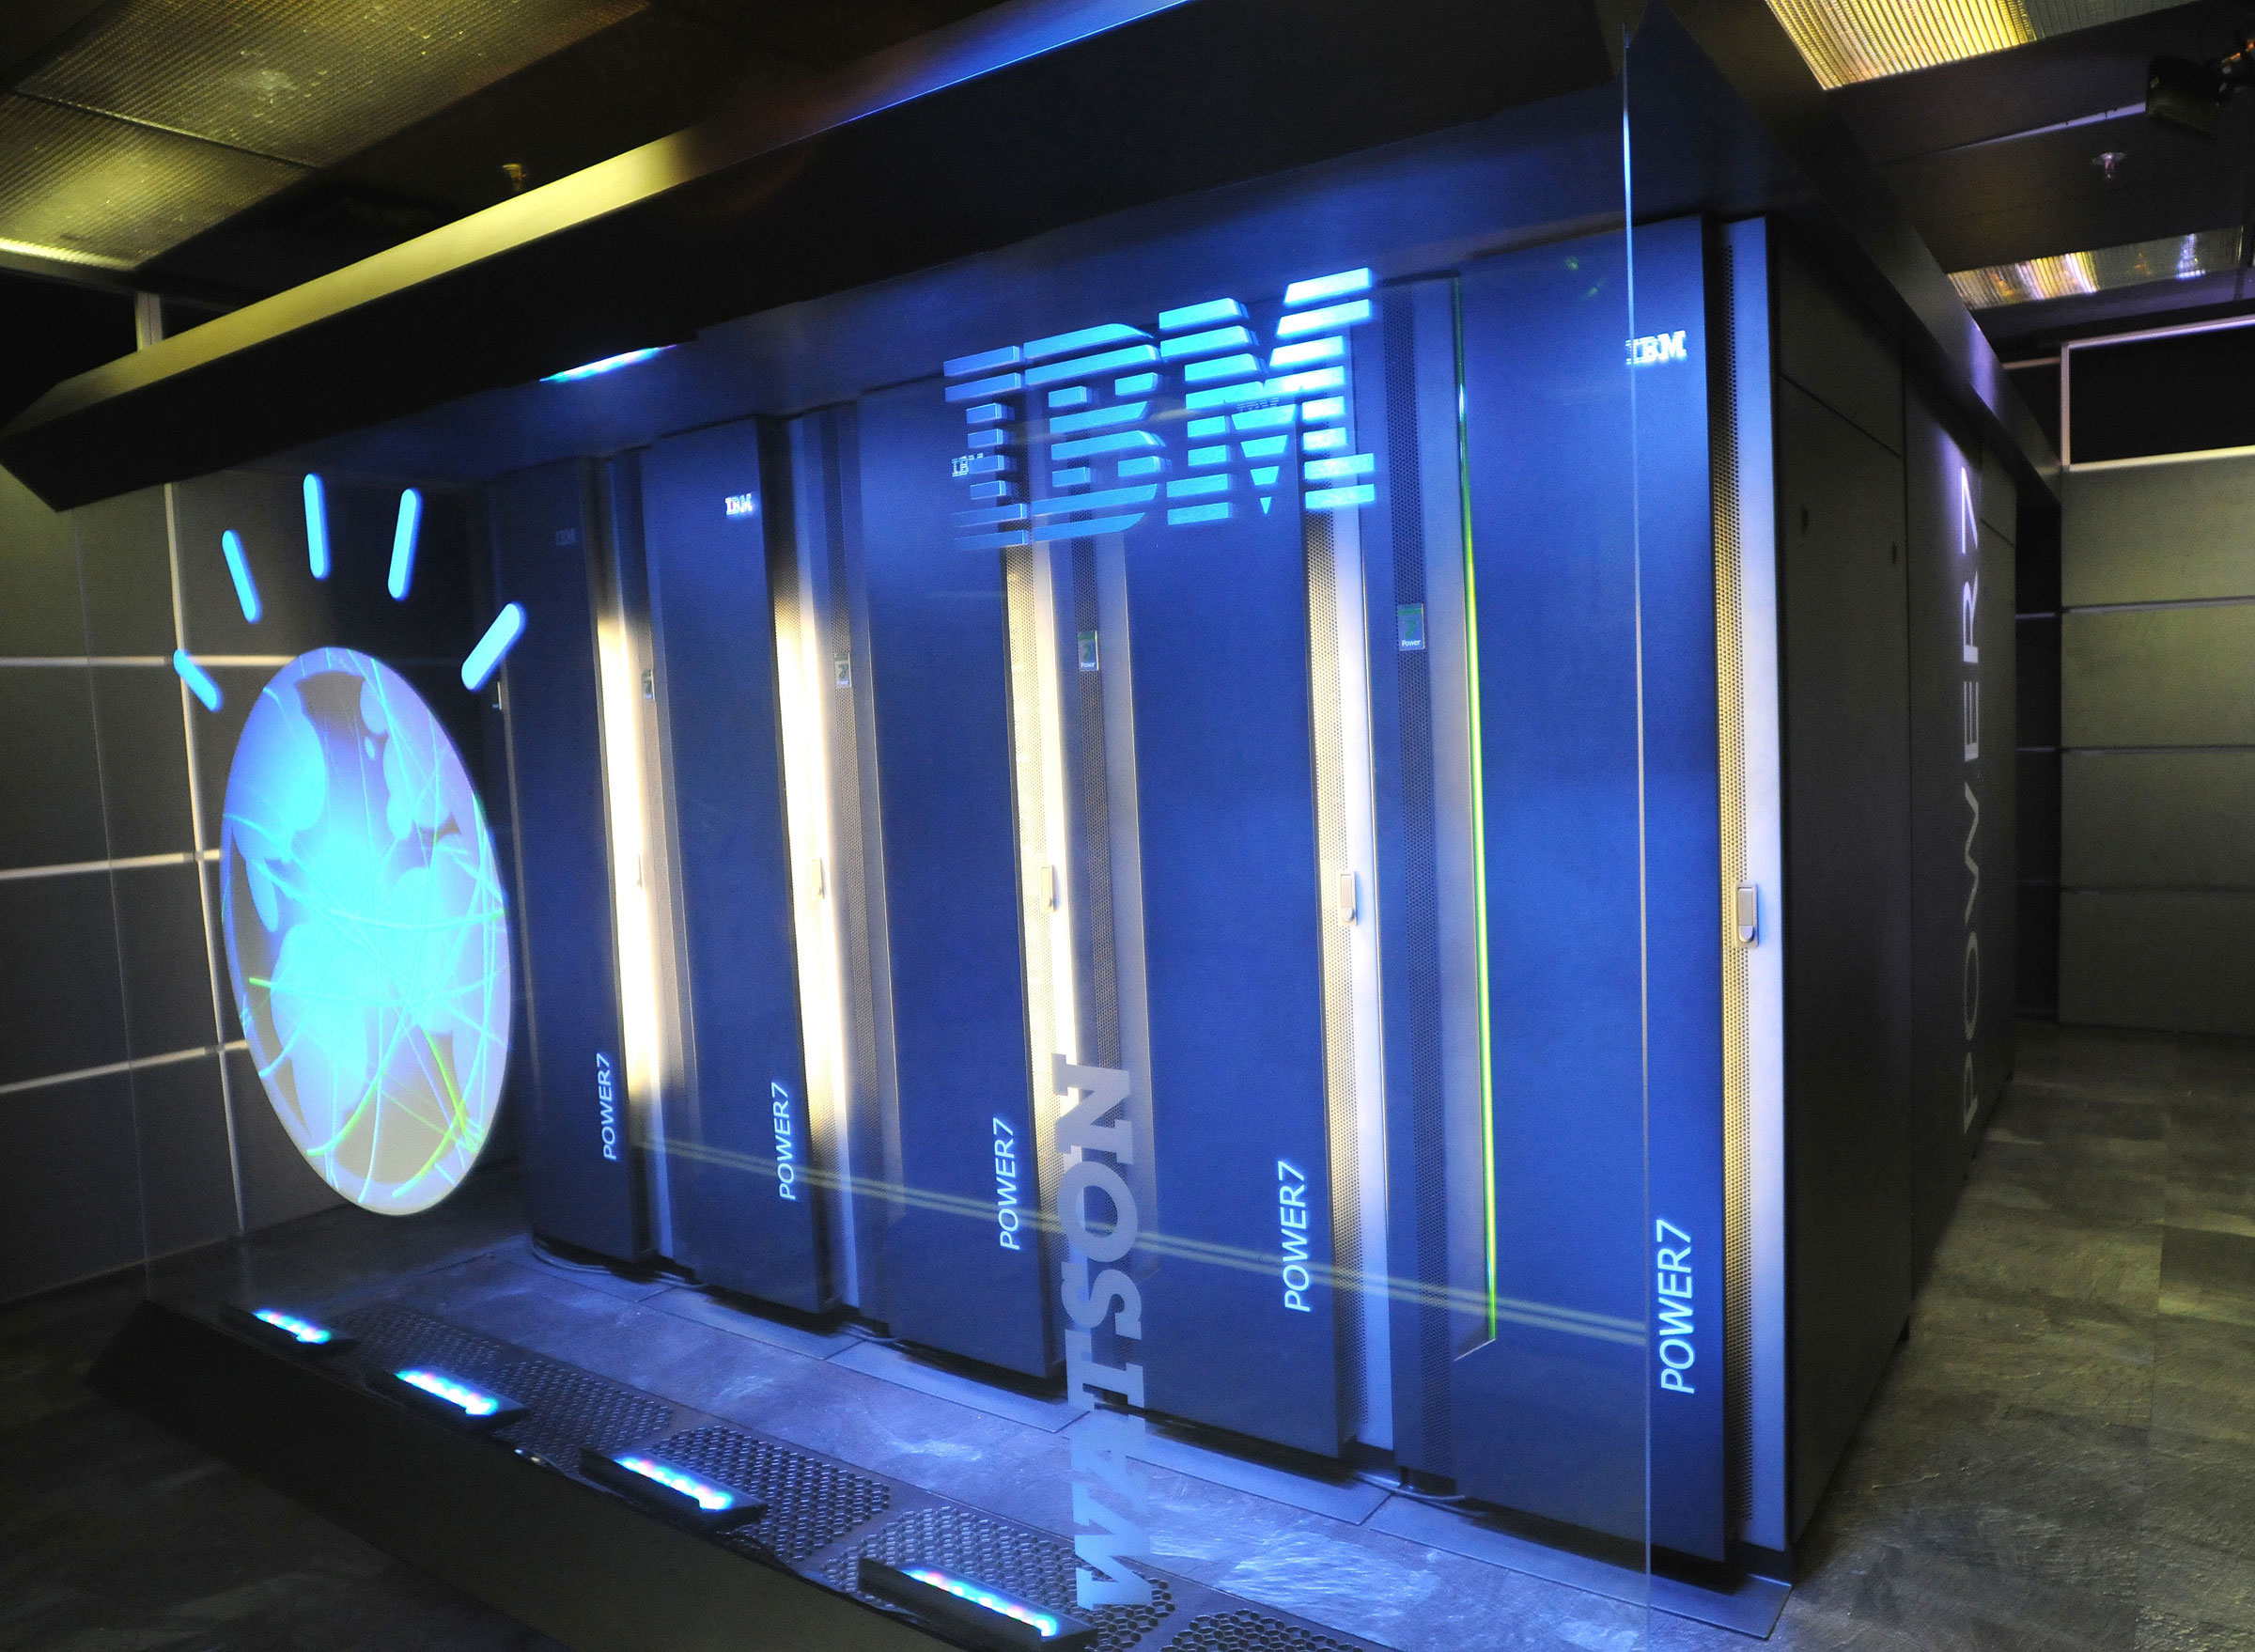 IBM Looking to Acquire Cloud Services Company SoftLayer